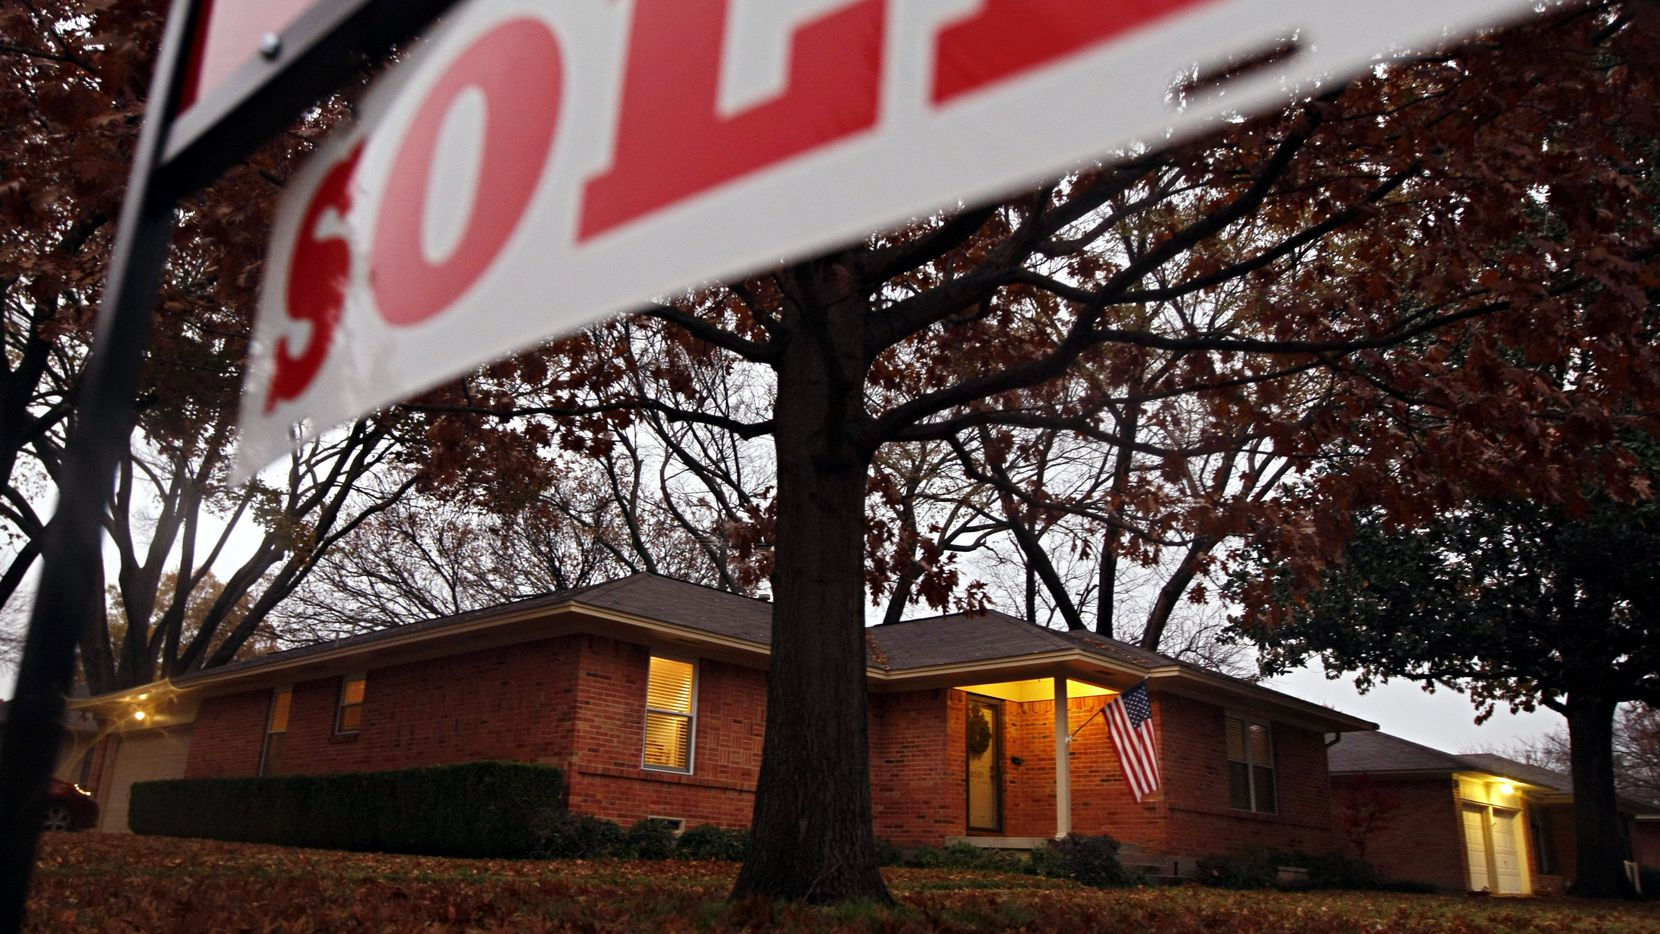 U.S. homeownership rates have moved higher during the pandemic.